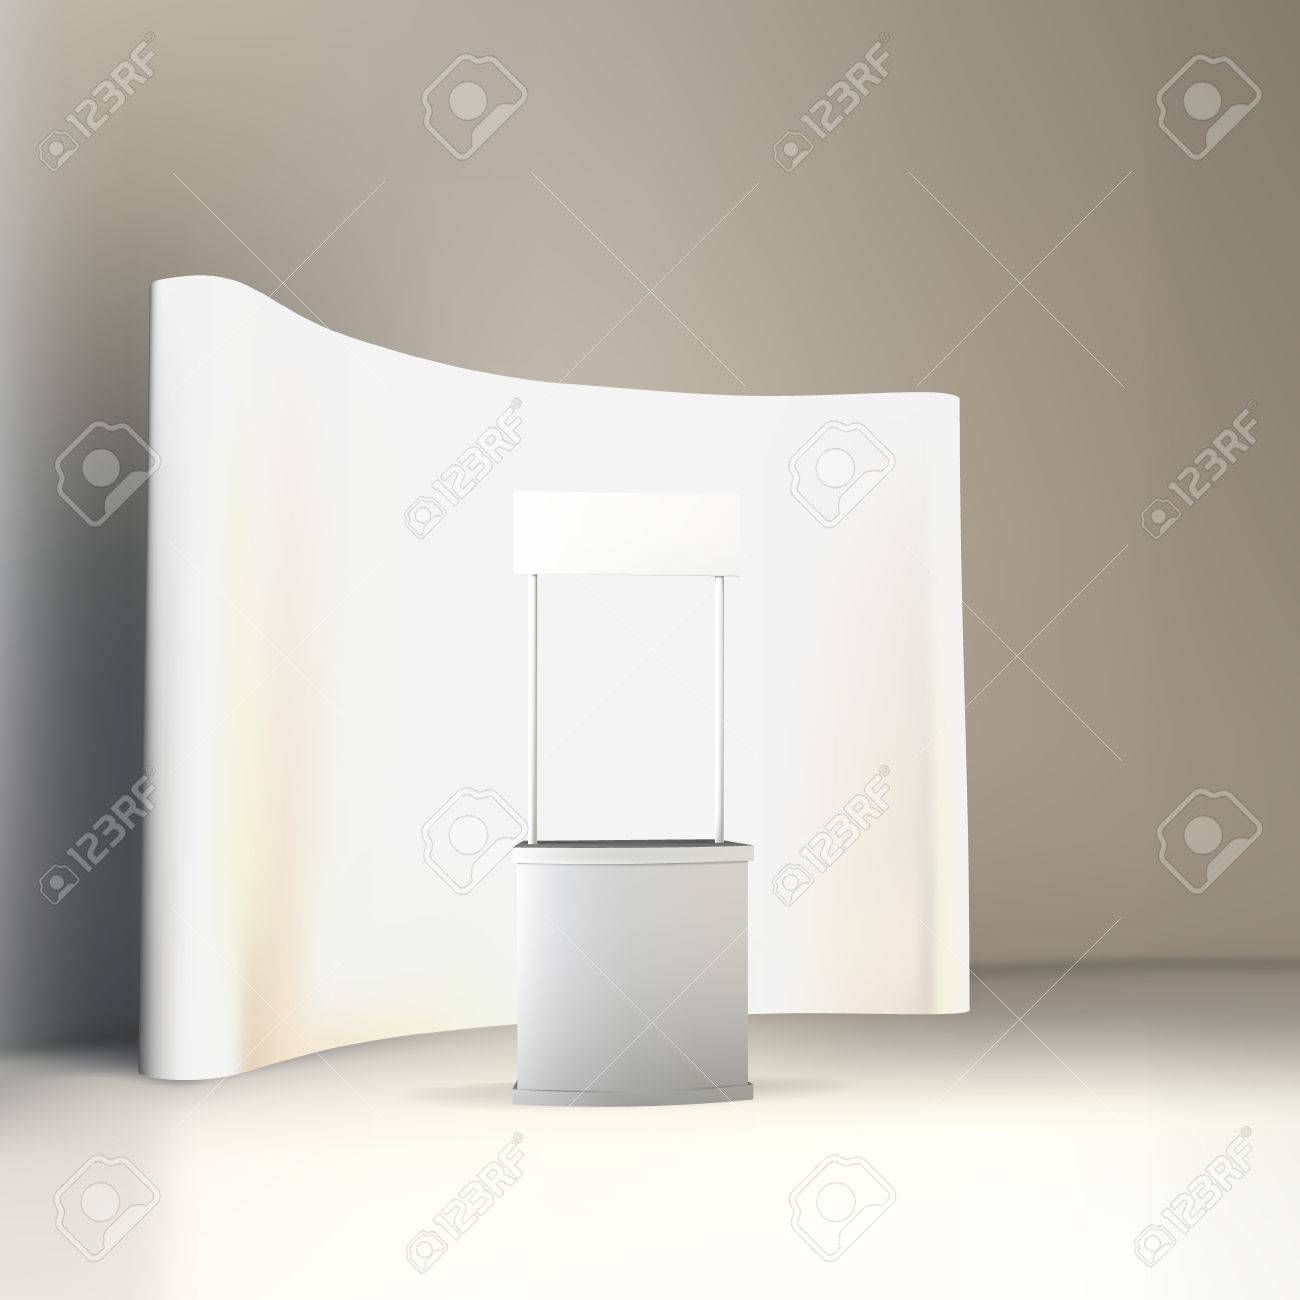 Trade Exhibition Stand Vector : Trade exhibition stand vector isolated royalty free cliparts